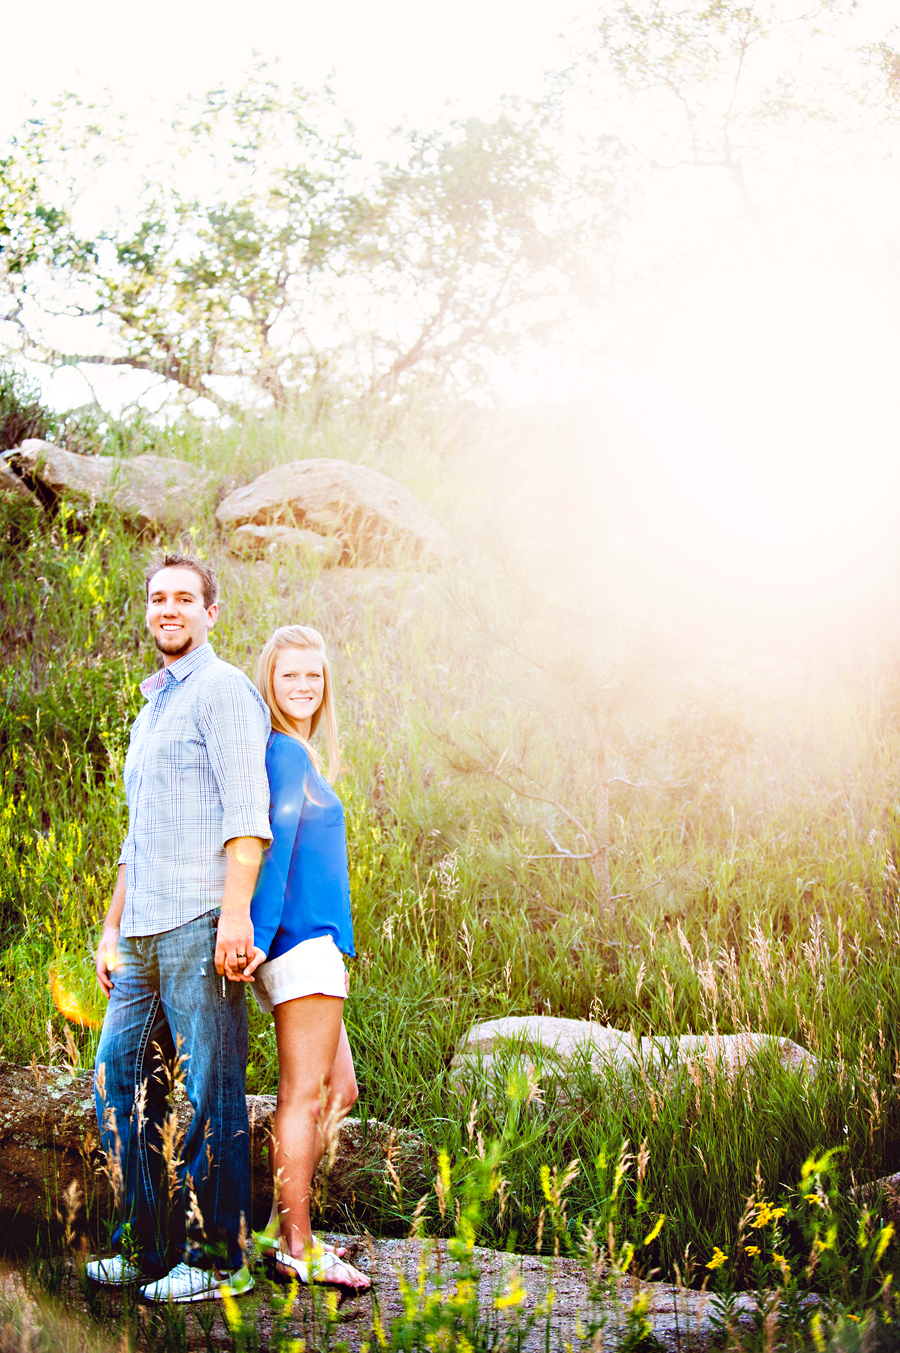 castle-rock-couple-sunlit-portrait.jpg